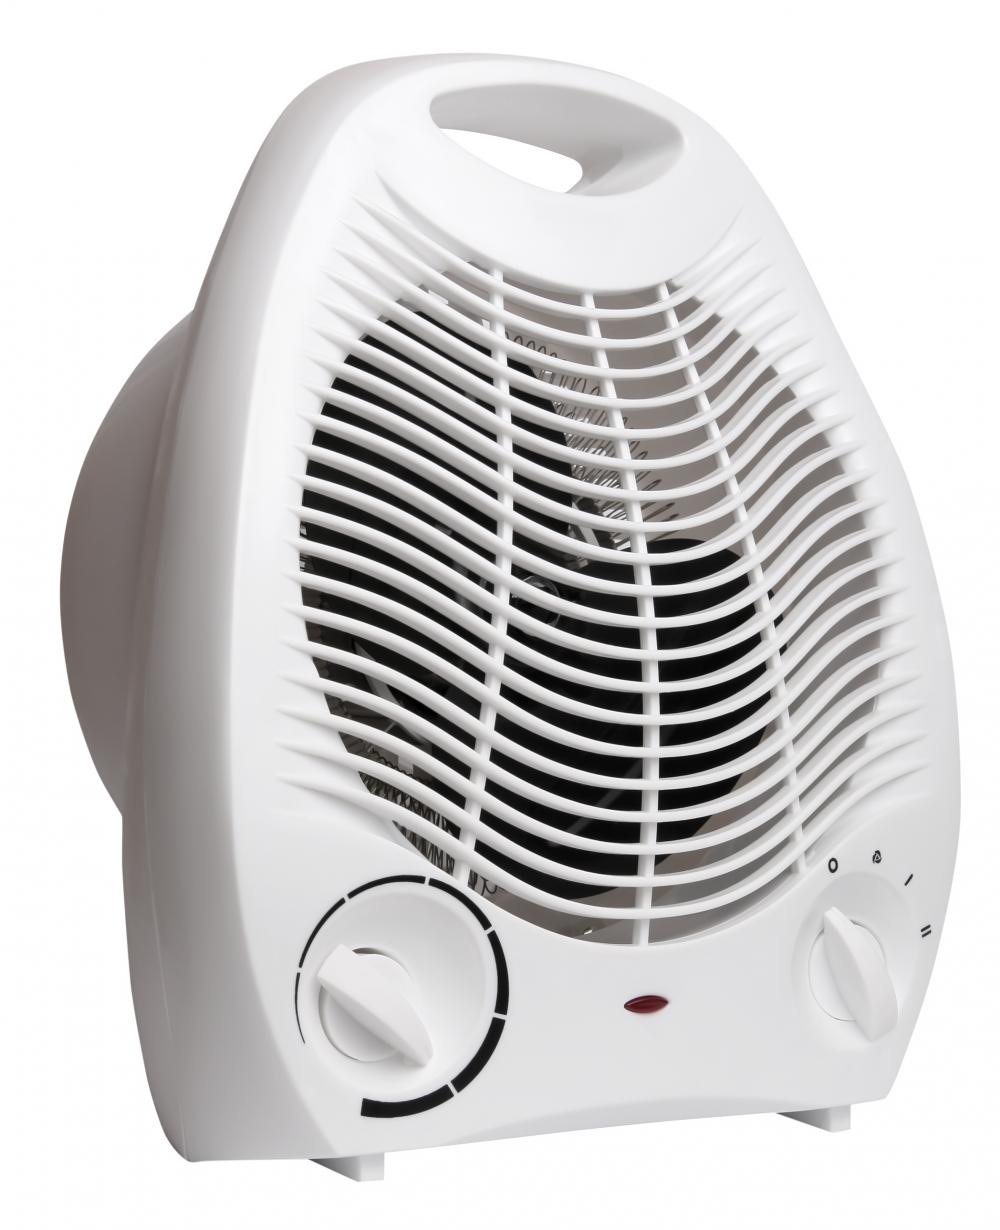 Portable Space Heaters Can Be A Hazard